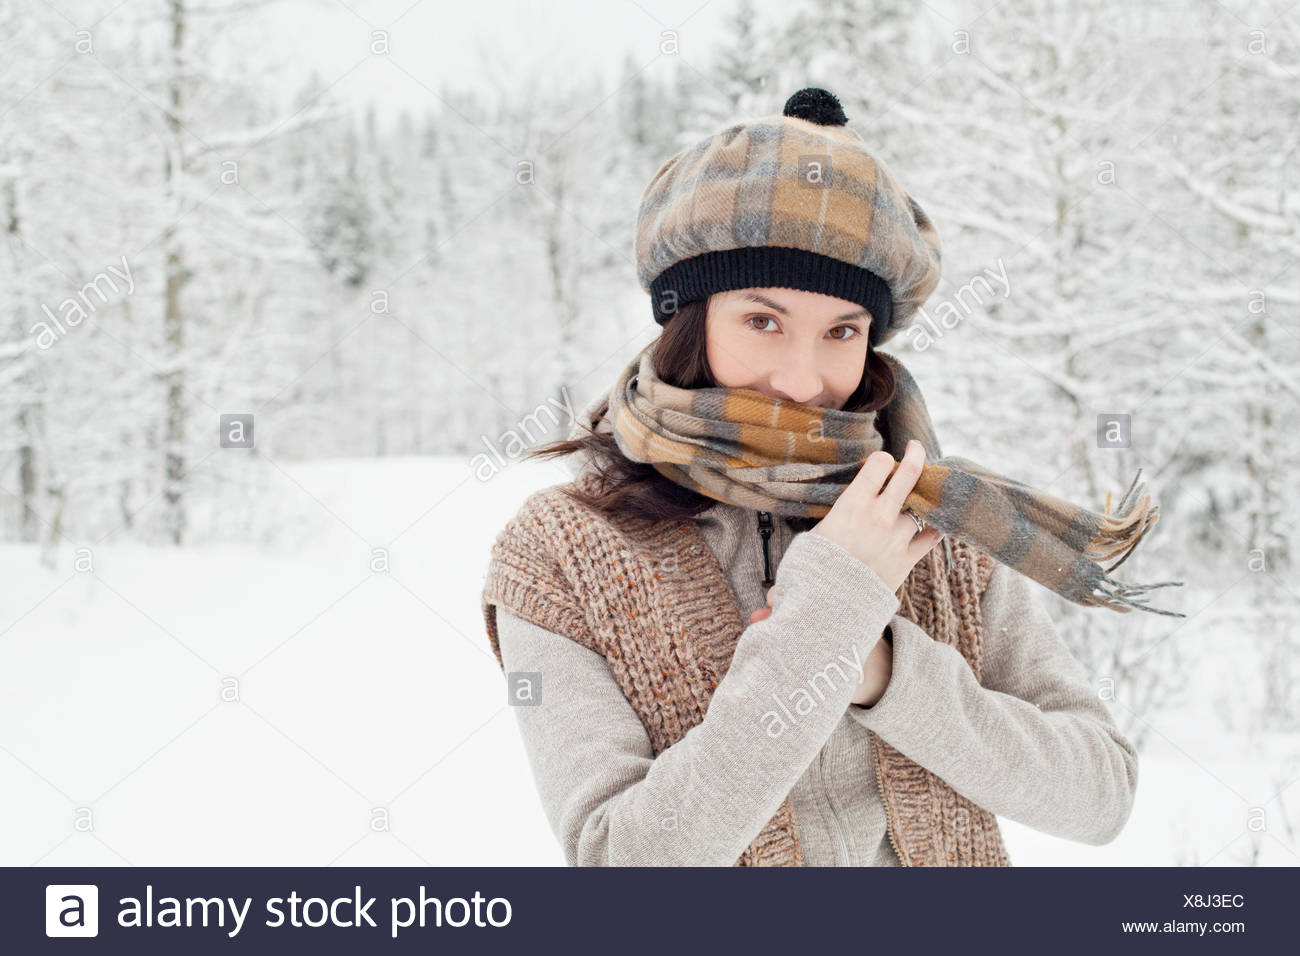 stylish young woman enjoying the outdoors - Stock Image